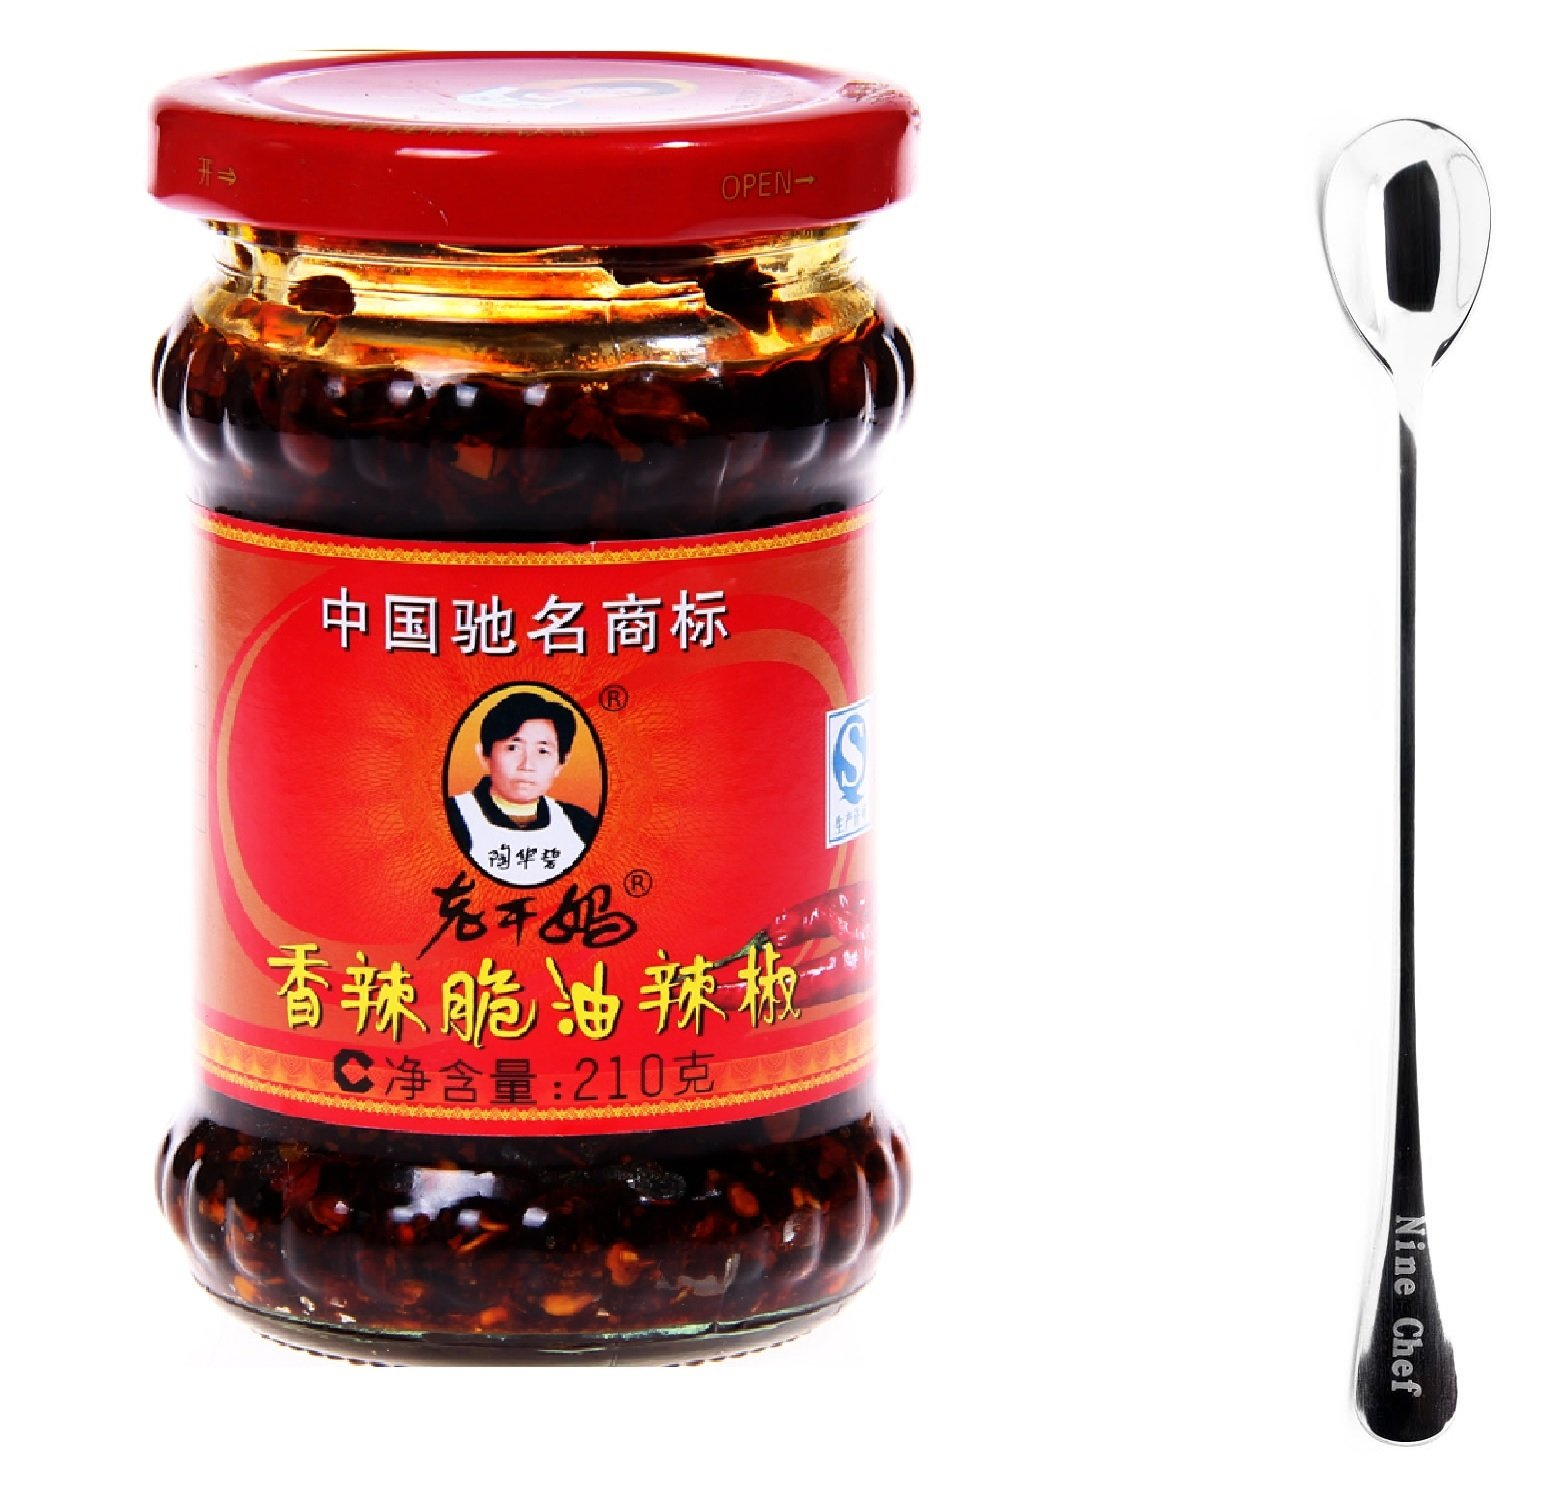 Lao Gan Ma Spicy Chili Crisp (Chili Oil Sauce) - 7.41 Ounce + Only one Free NineChef Spoon